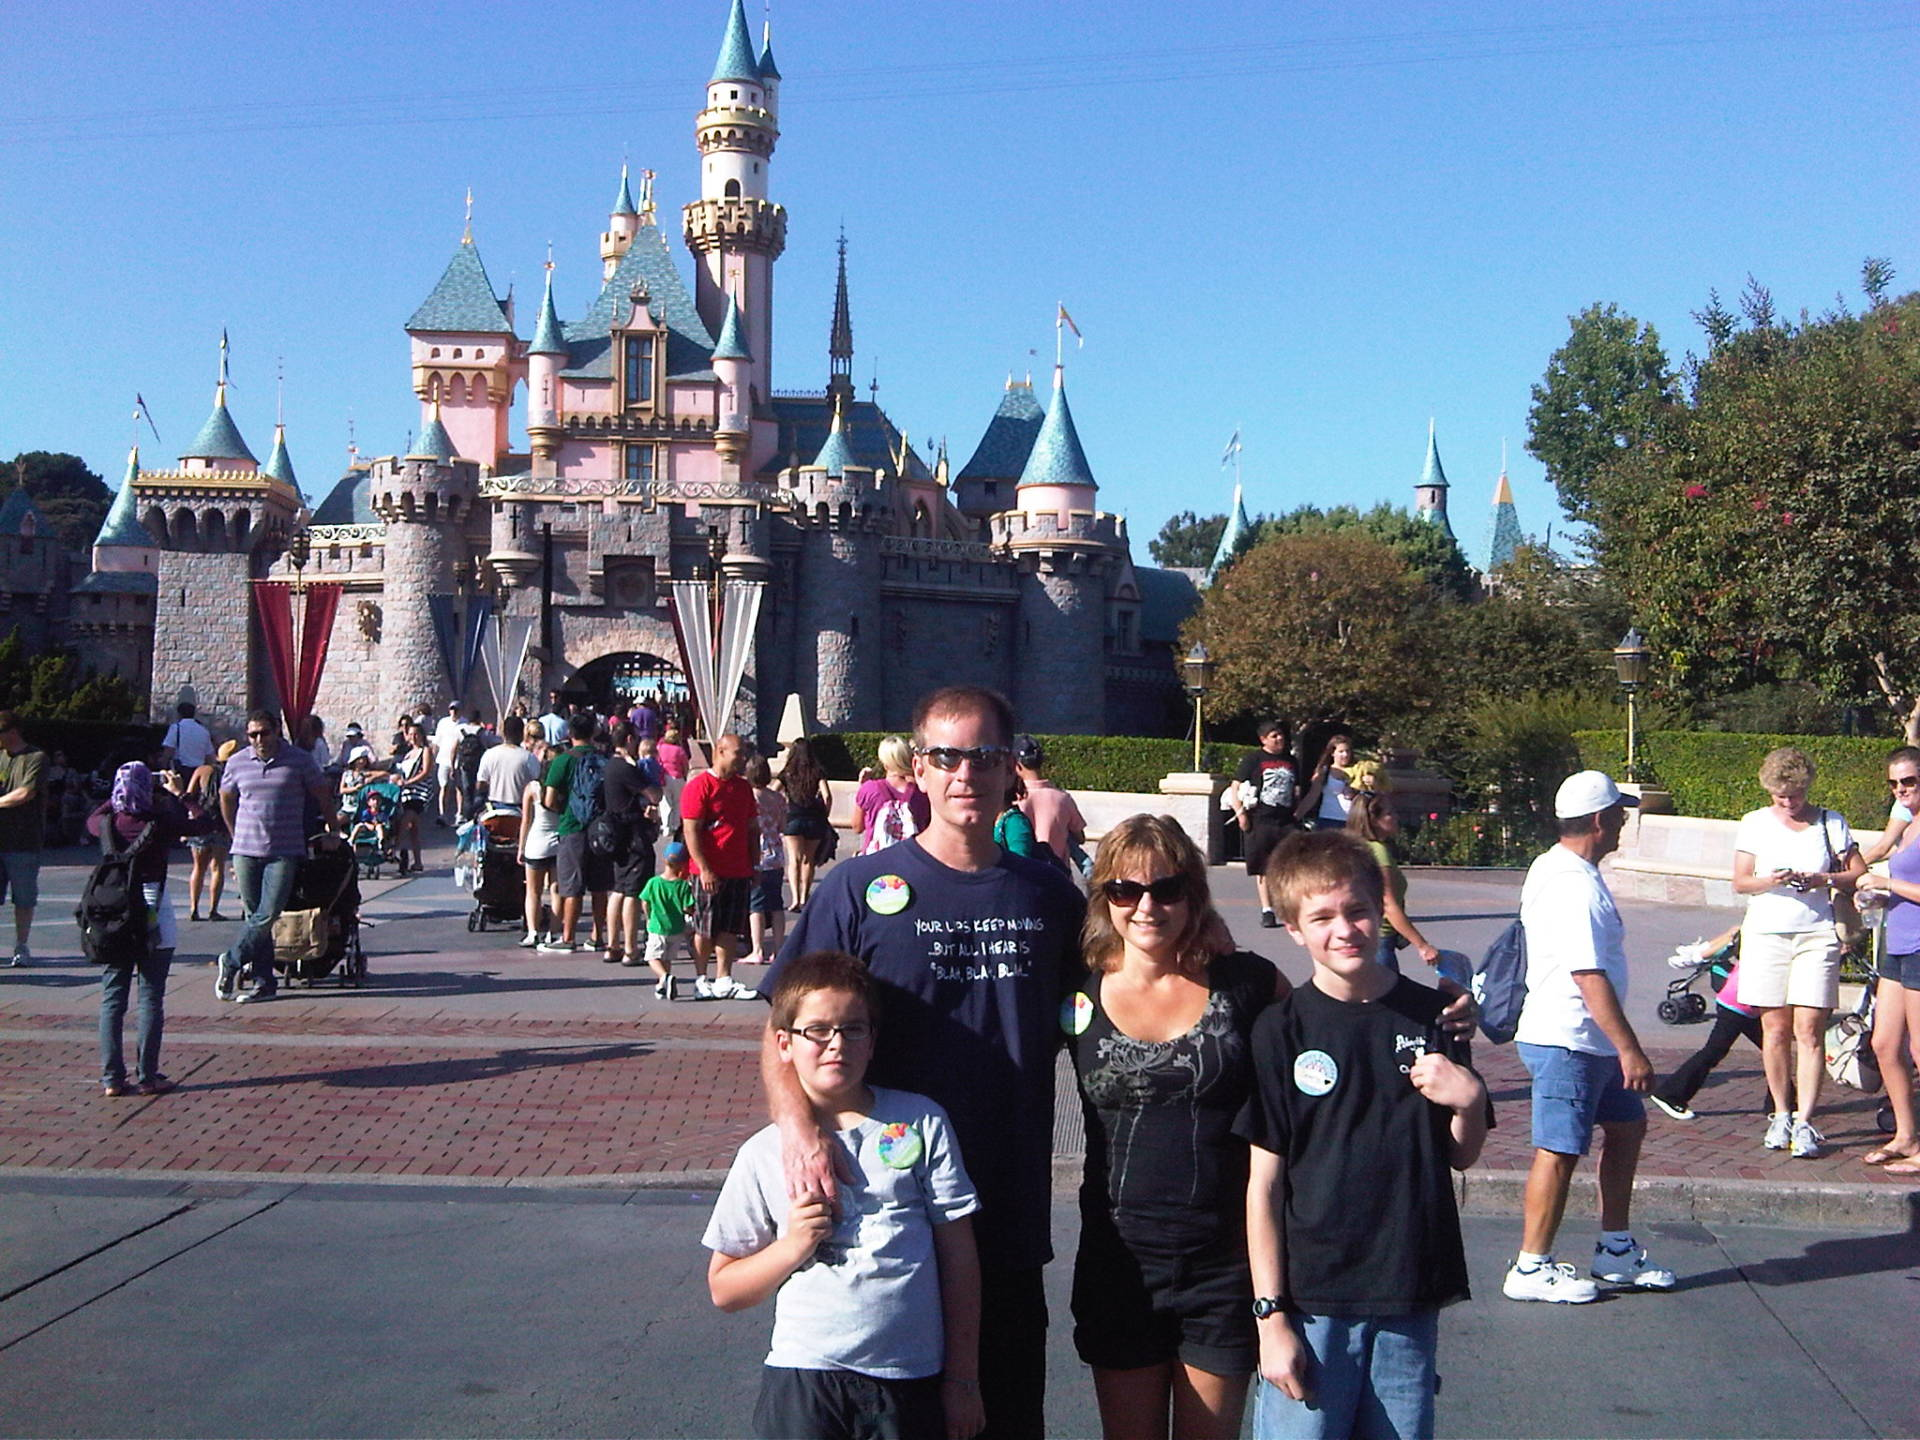 Eric and Cindy Everson on vacation with their sons. (Photo: Everson Family)